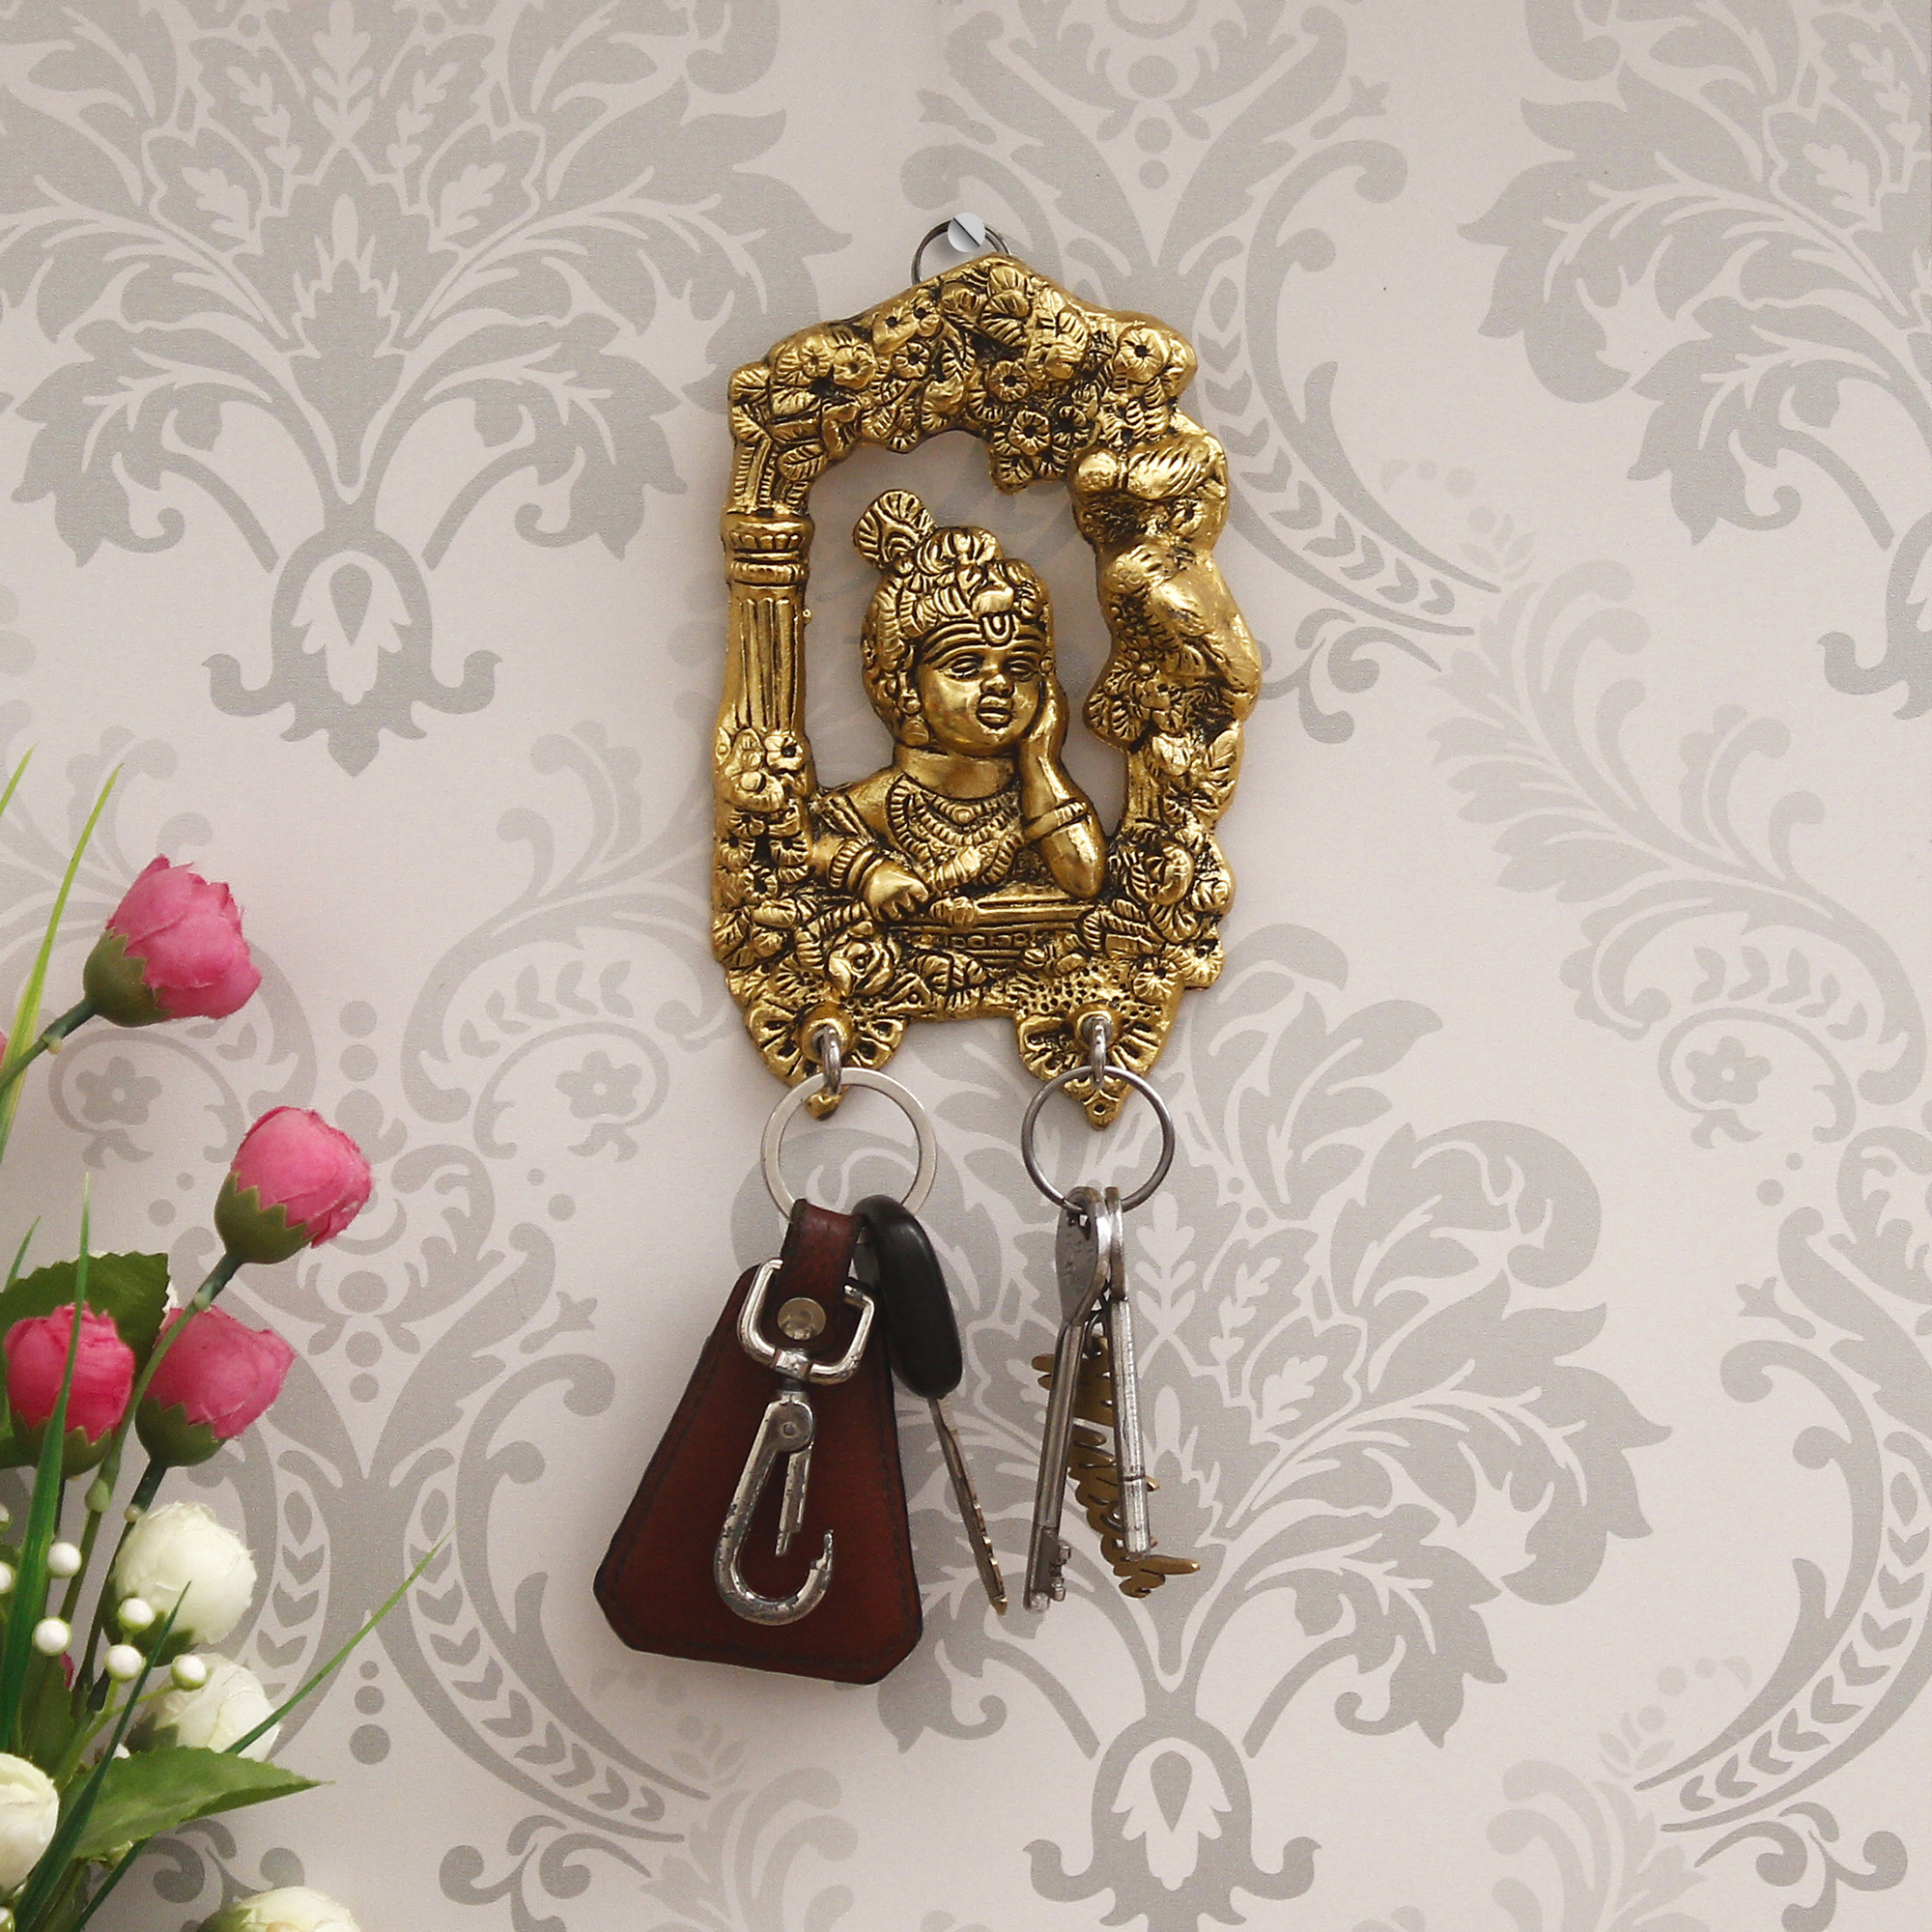 Golden Lord Krishna 2 Hooks Key Holder Indian Home Decor